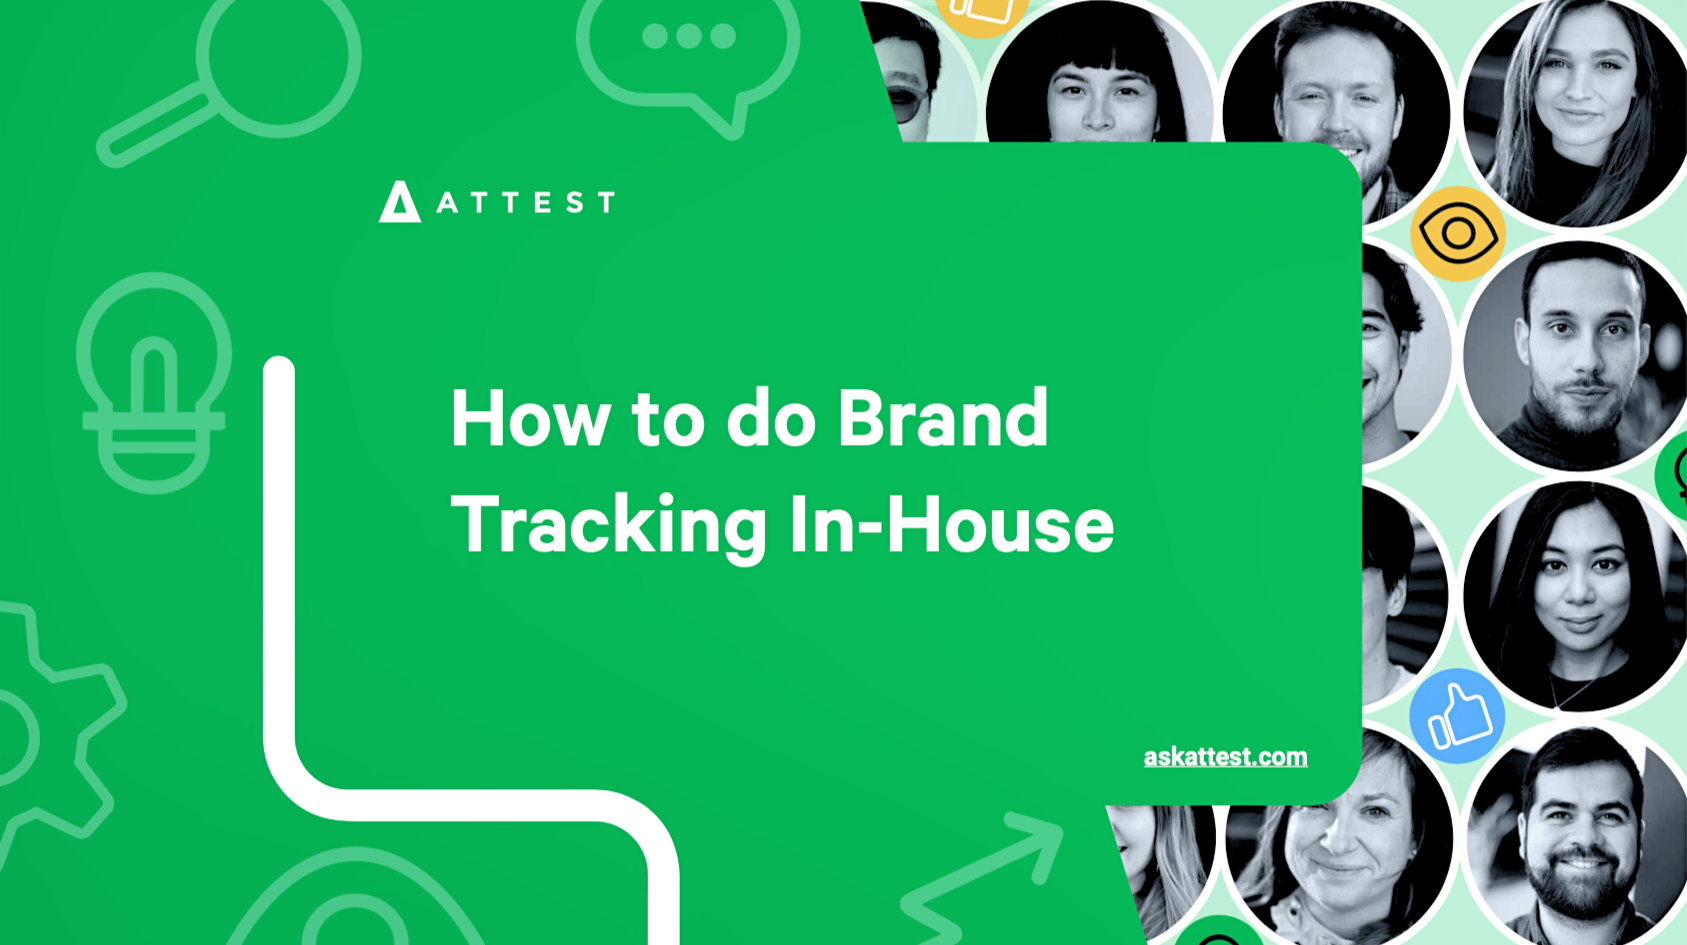 How to do Brand Tracking In-House